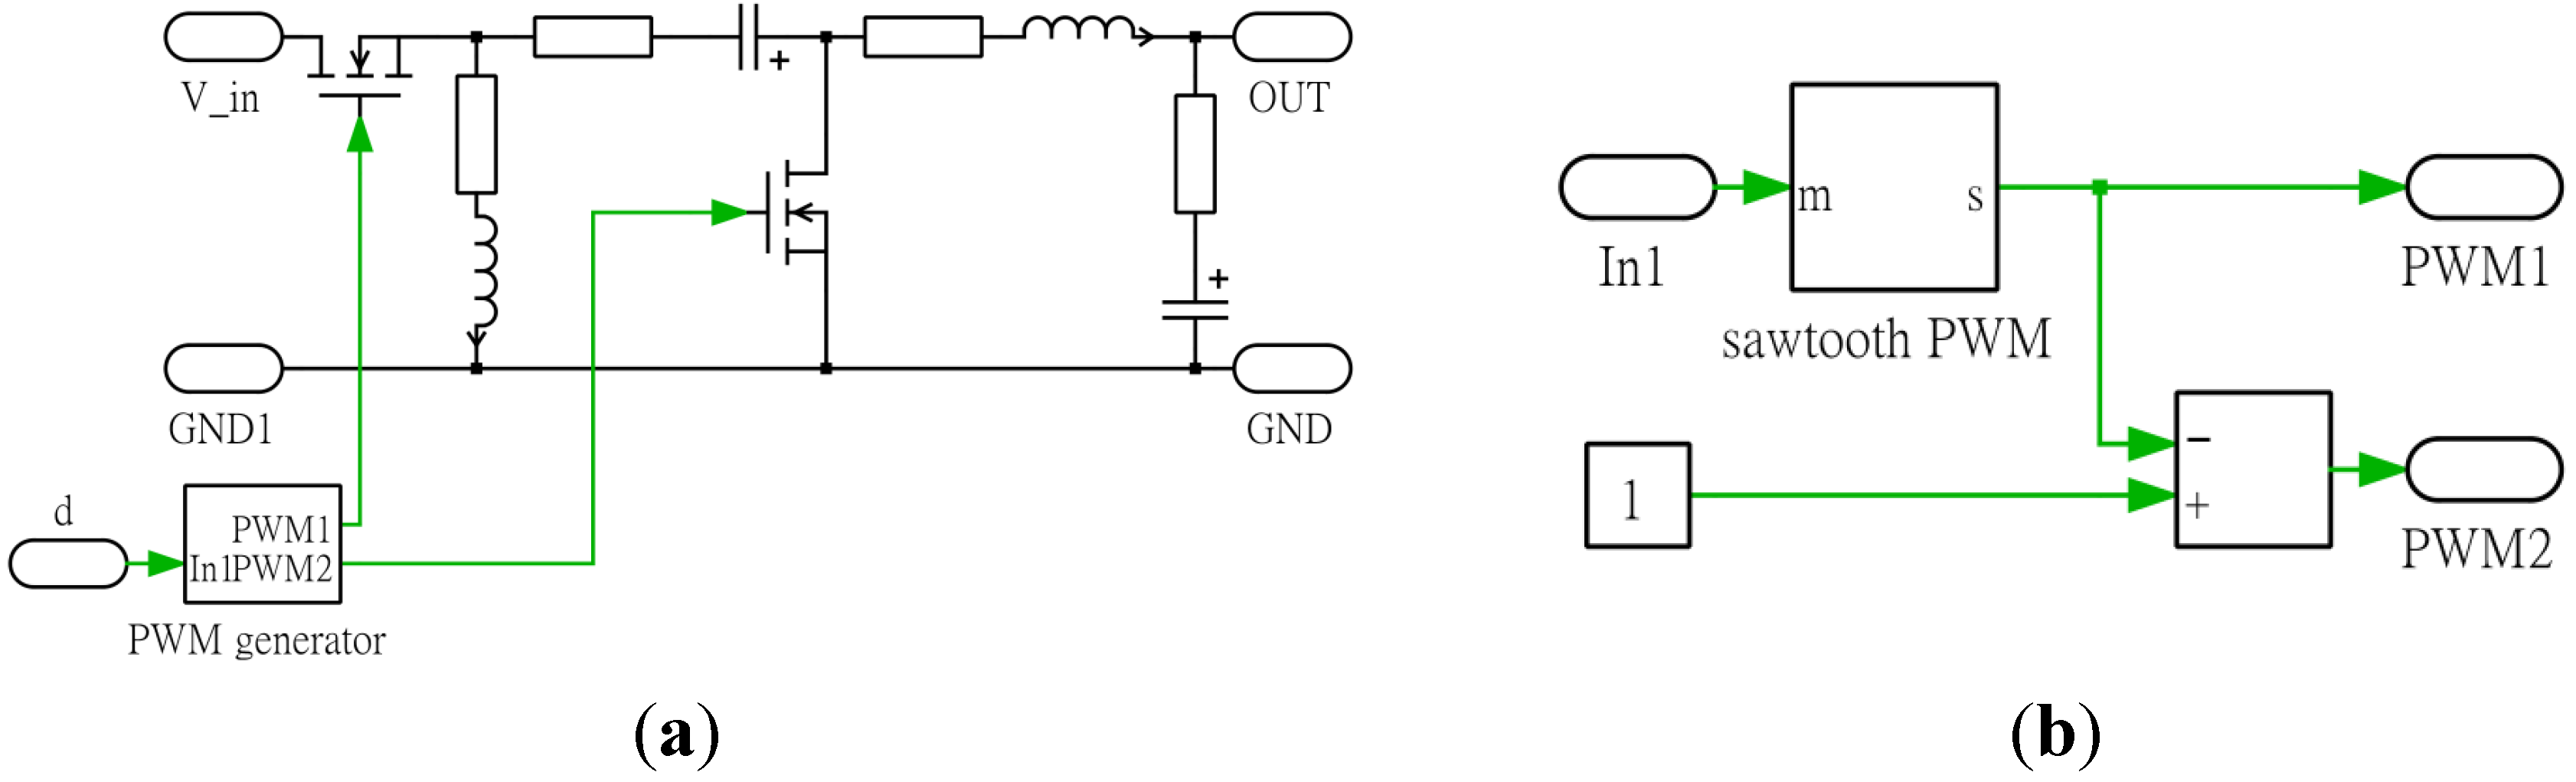 Energies Free Full Text Fuzzy Controller For A Voltage Regulated Mppt Charge Circuit Diagram No